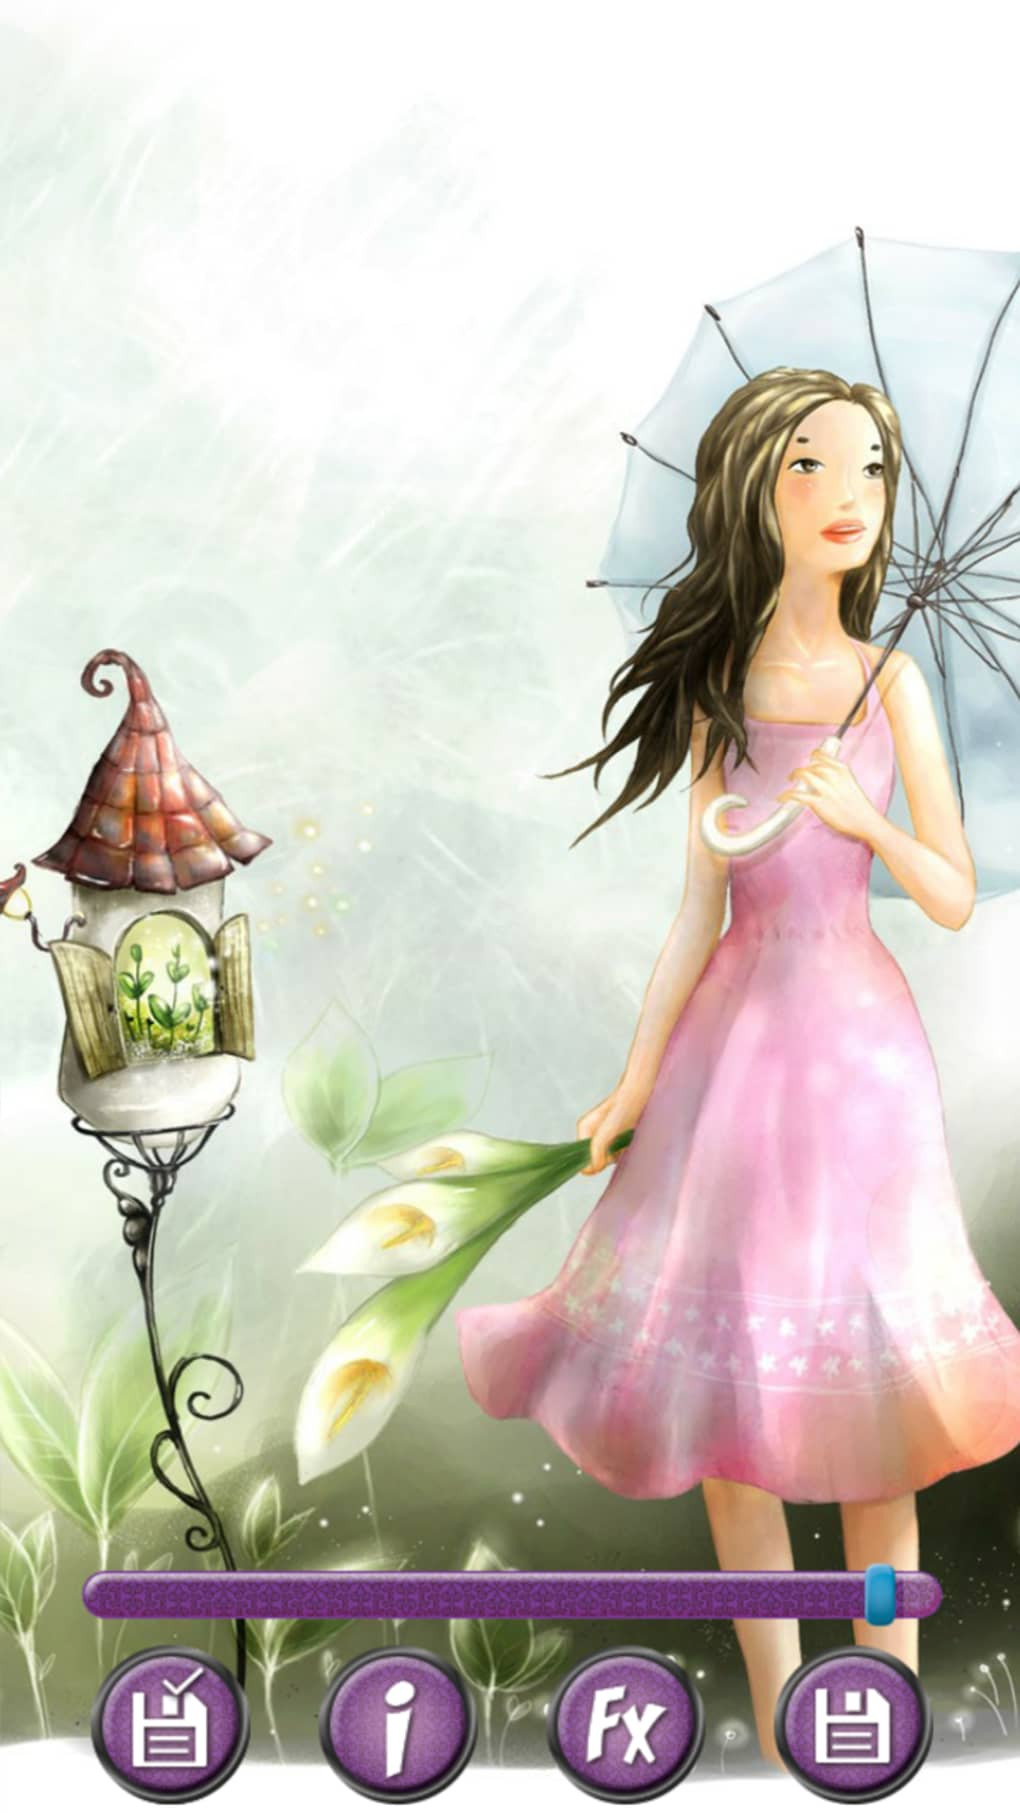 Cute Wallpapers For Girls Hd 3d For Android Download